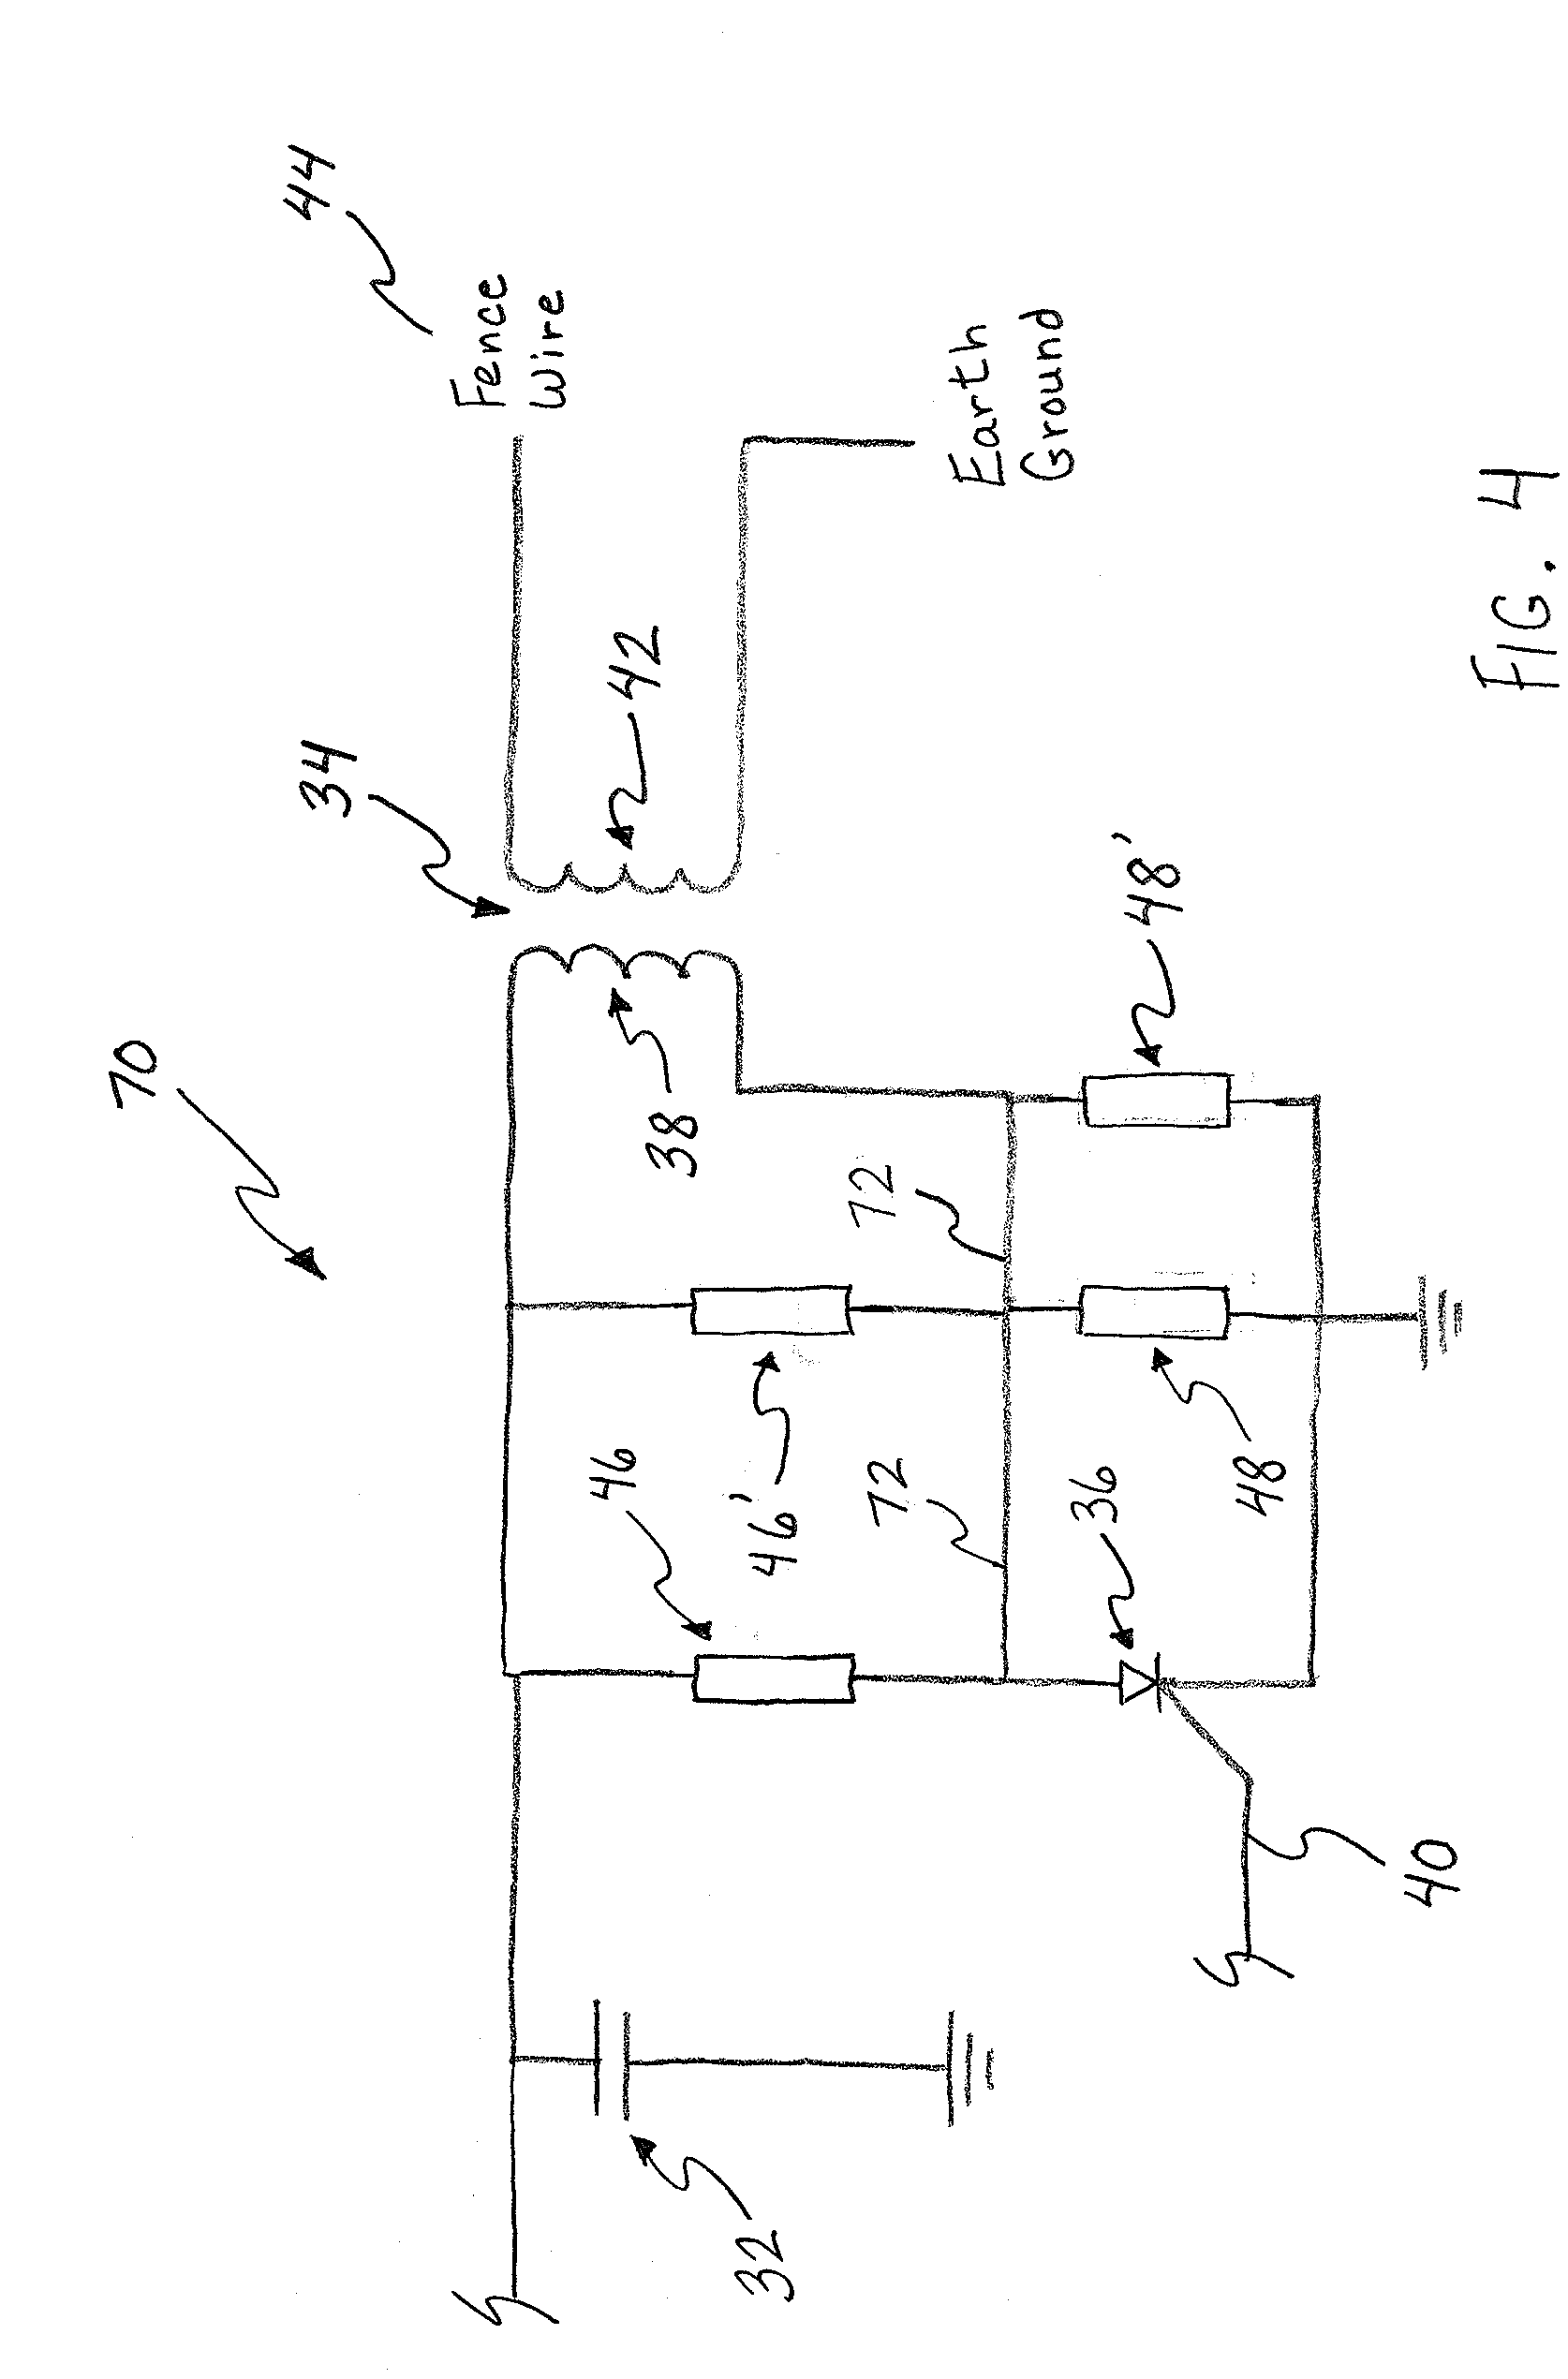 open circuit of electric fencing